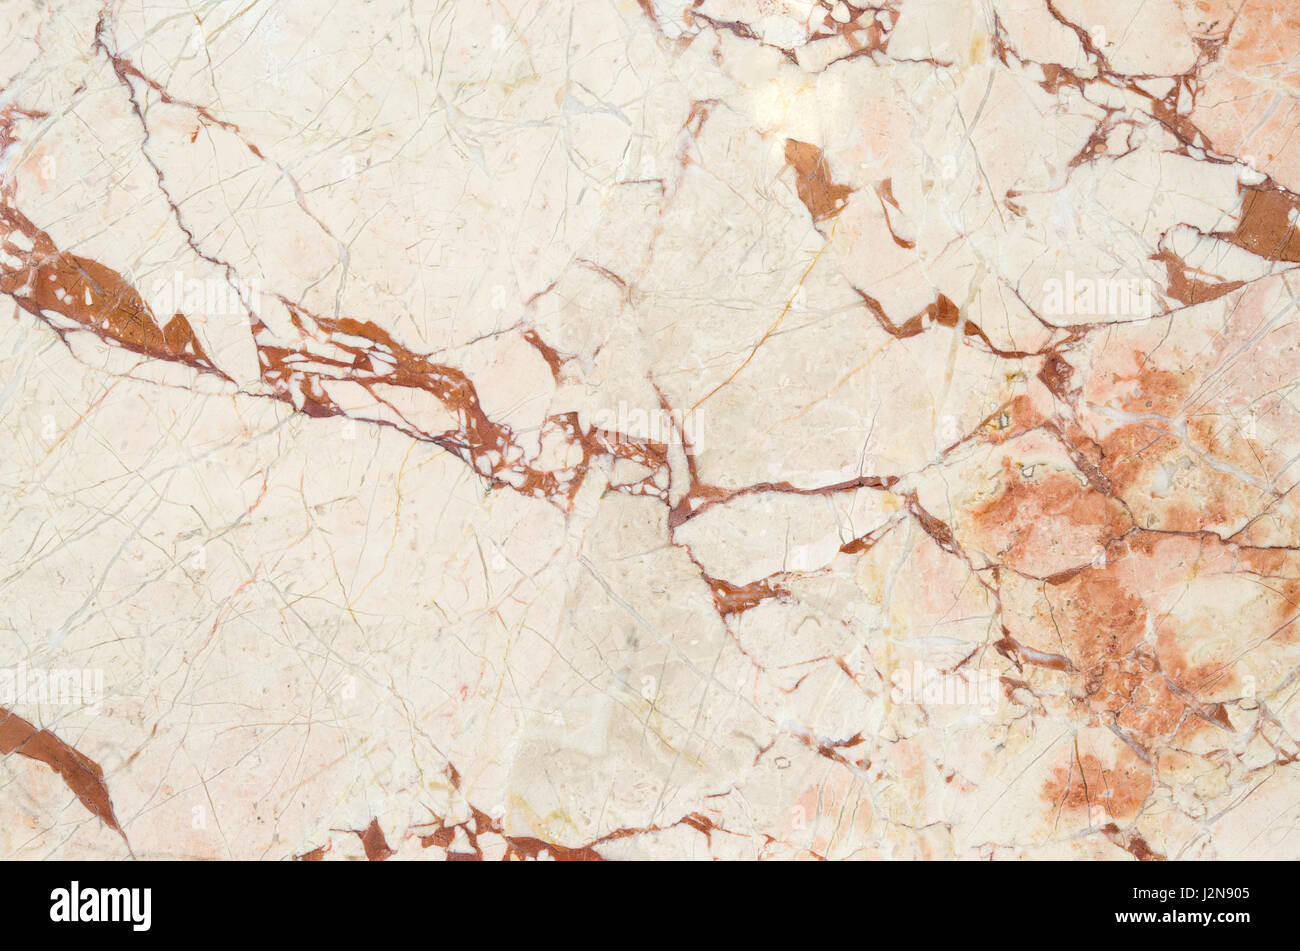 Light Brown Marble Texture Background Abstract Natural Texture For Stock Photo Alamy